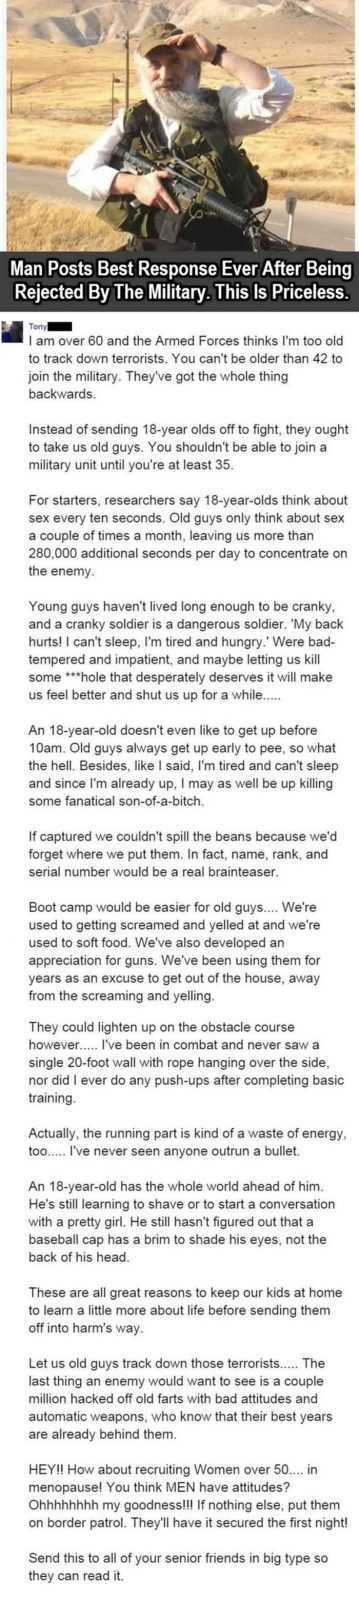 12 Funny Jokes And Short Stories - Rejected By Military